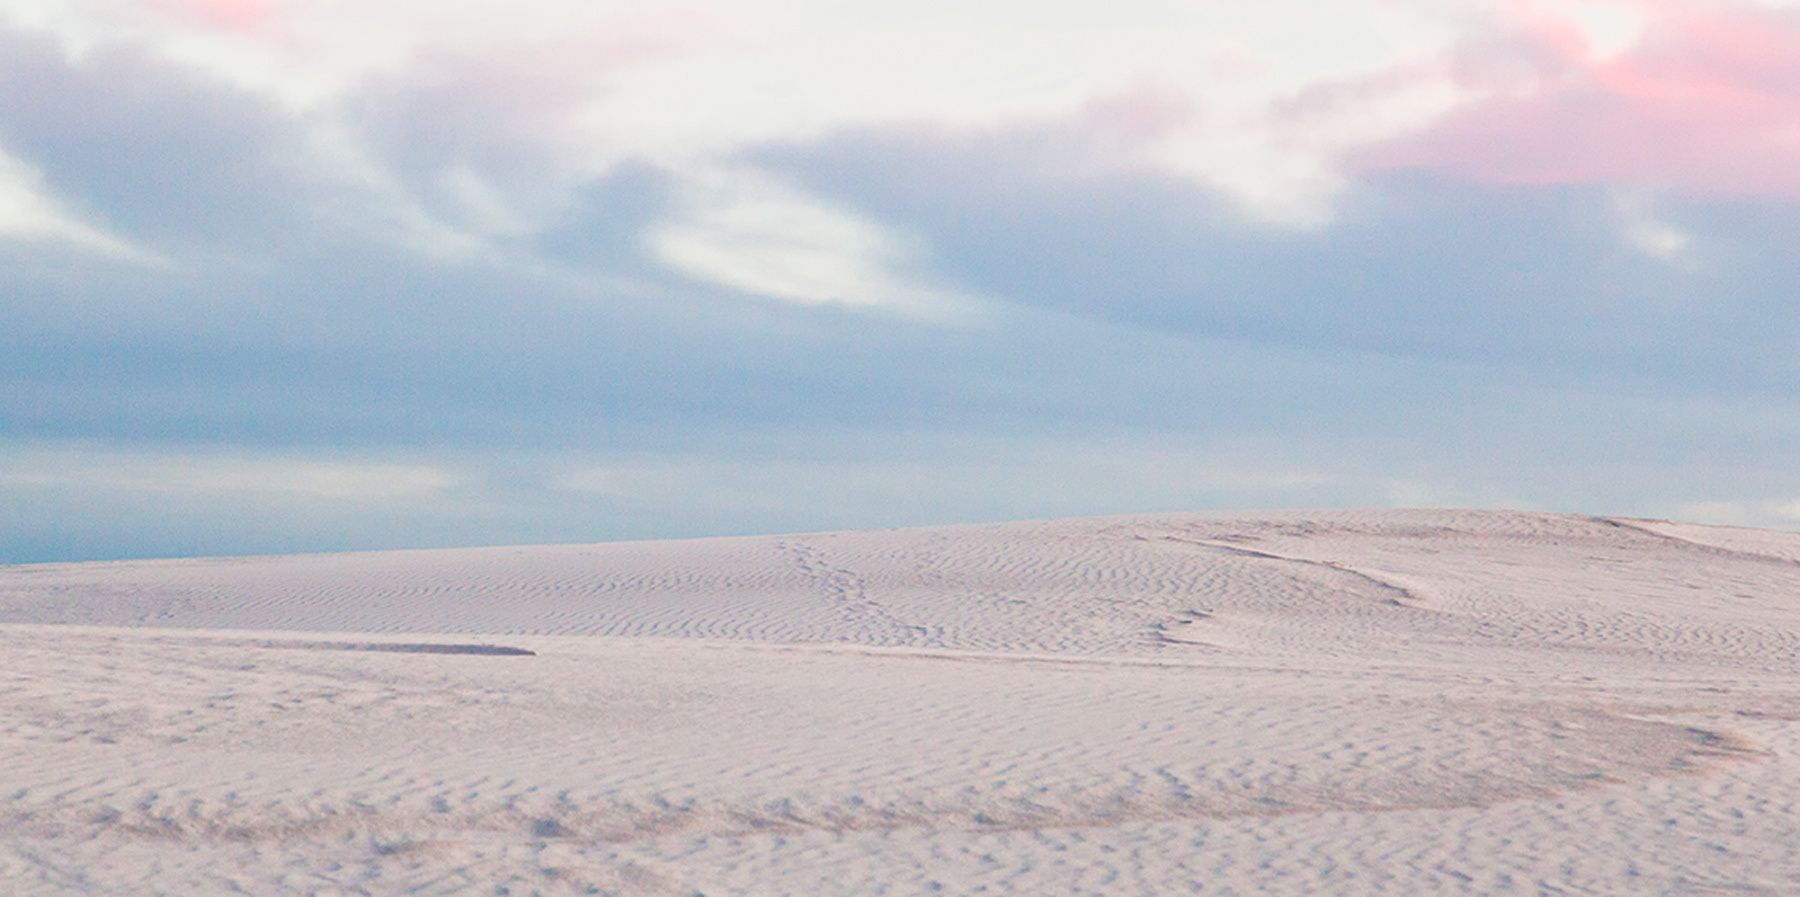 Dunescape I, White Sands National Monument